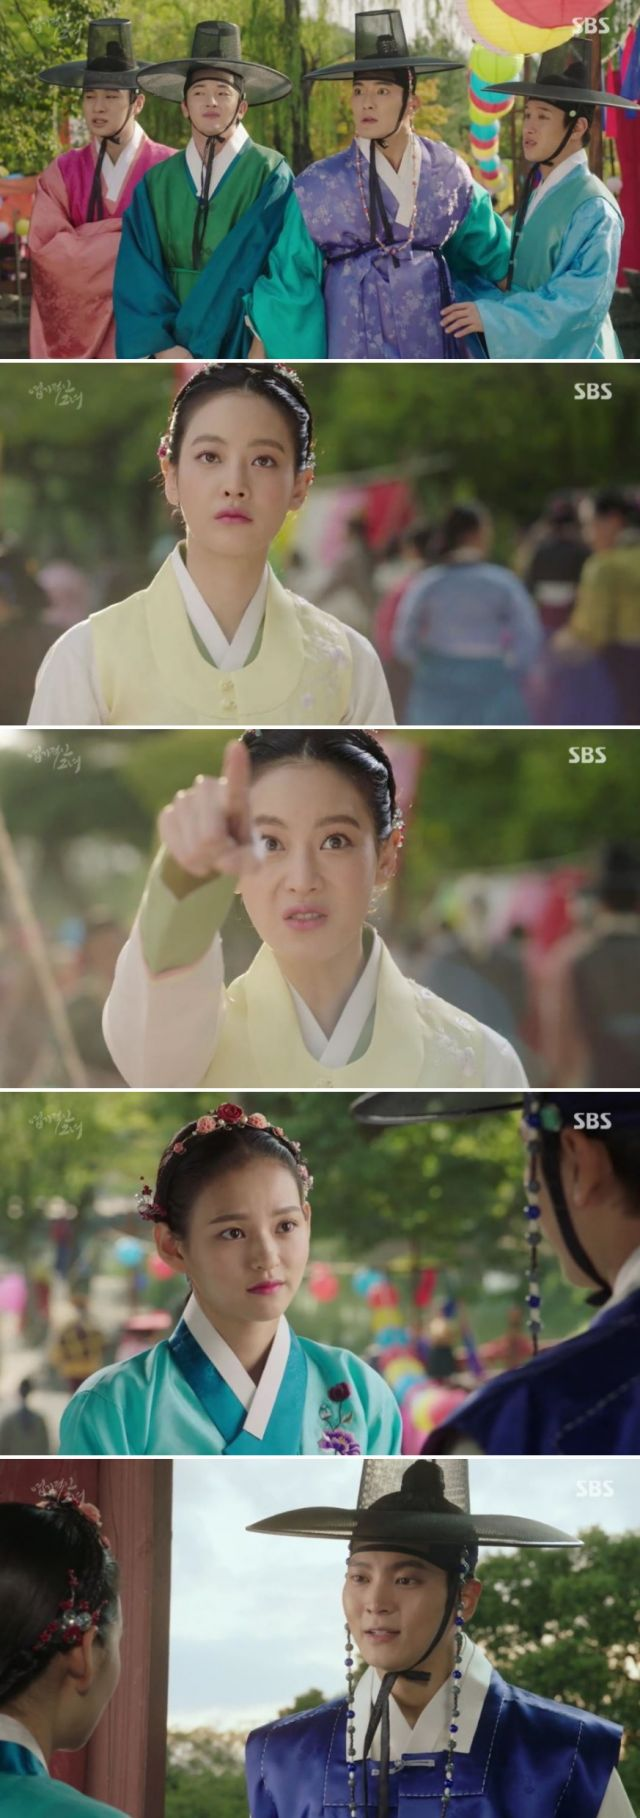 [Spoiler] Added episodes 5 and 6 captures for the Korean drama 'My Sassy Girl - Drama'